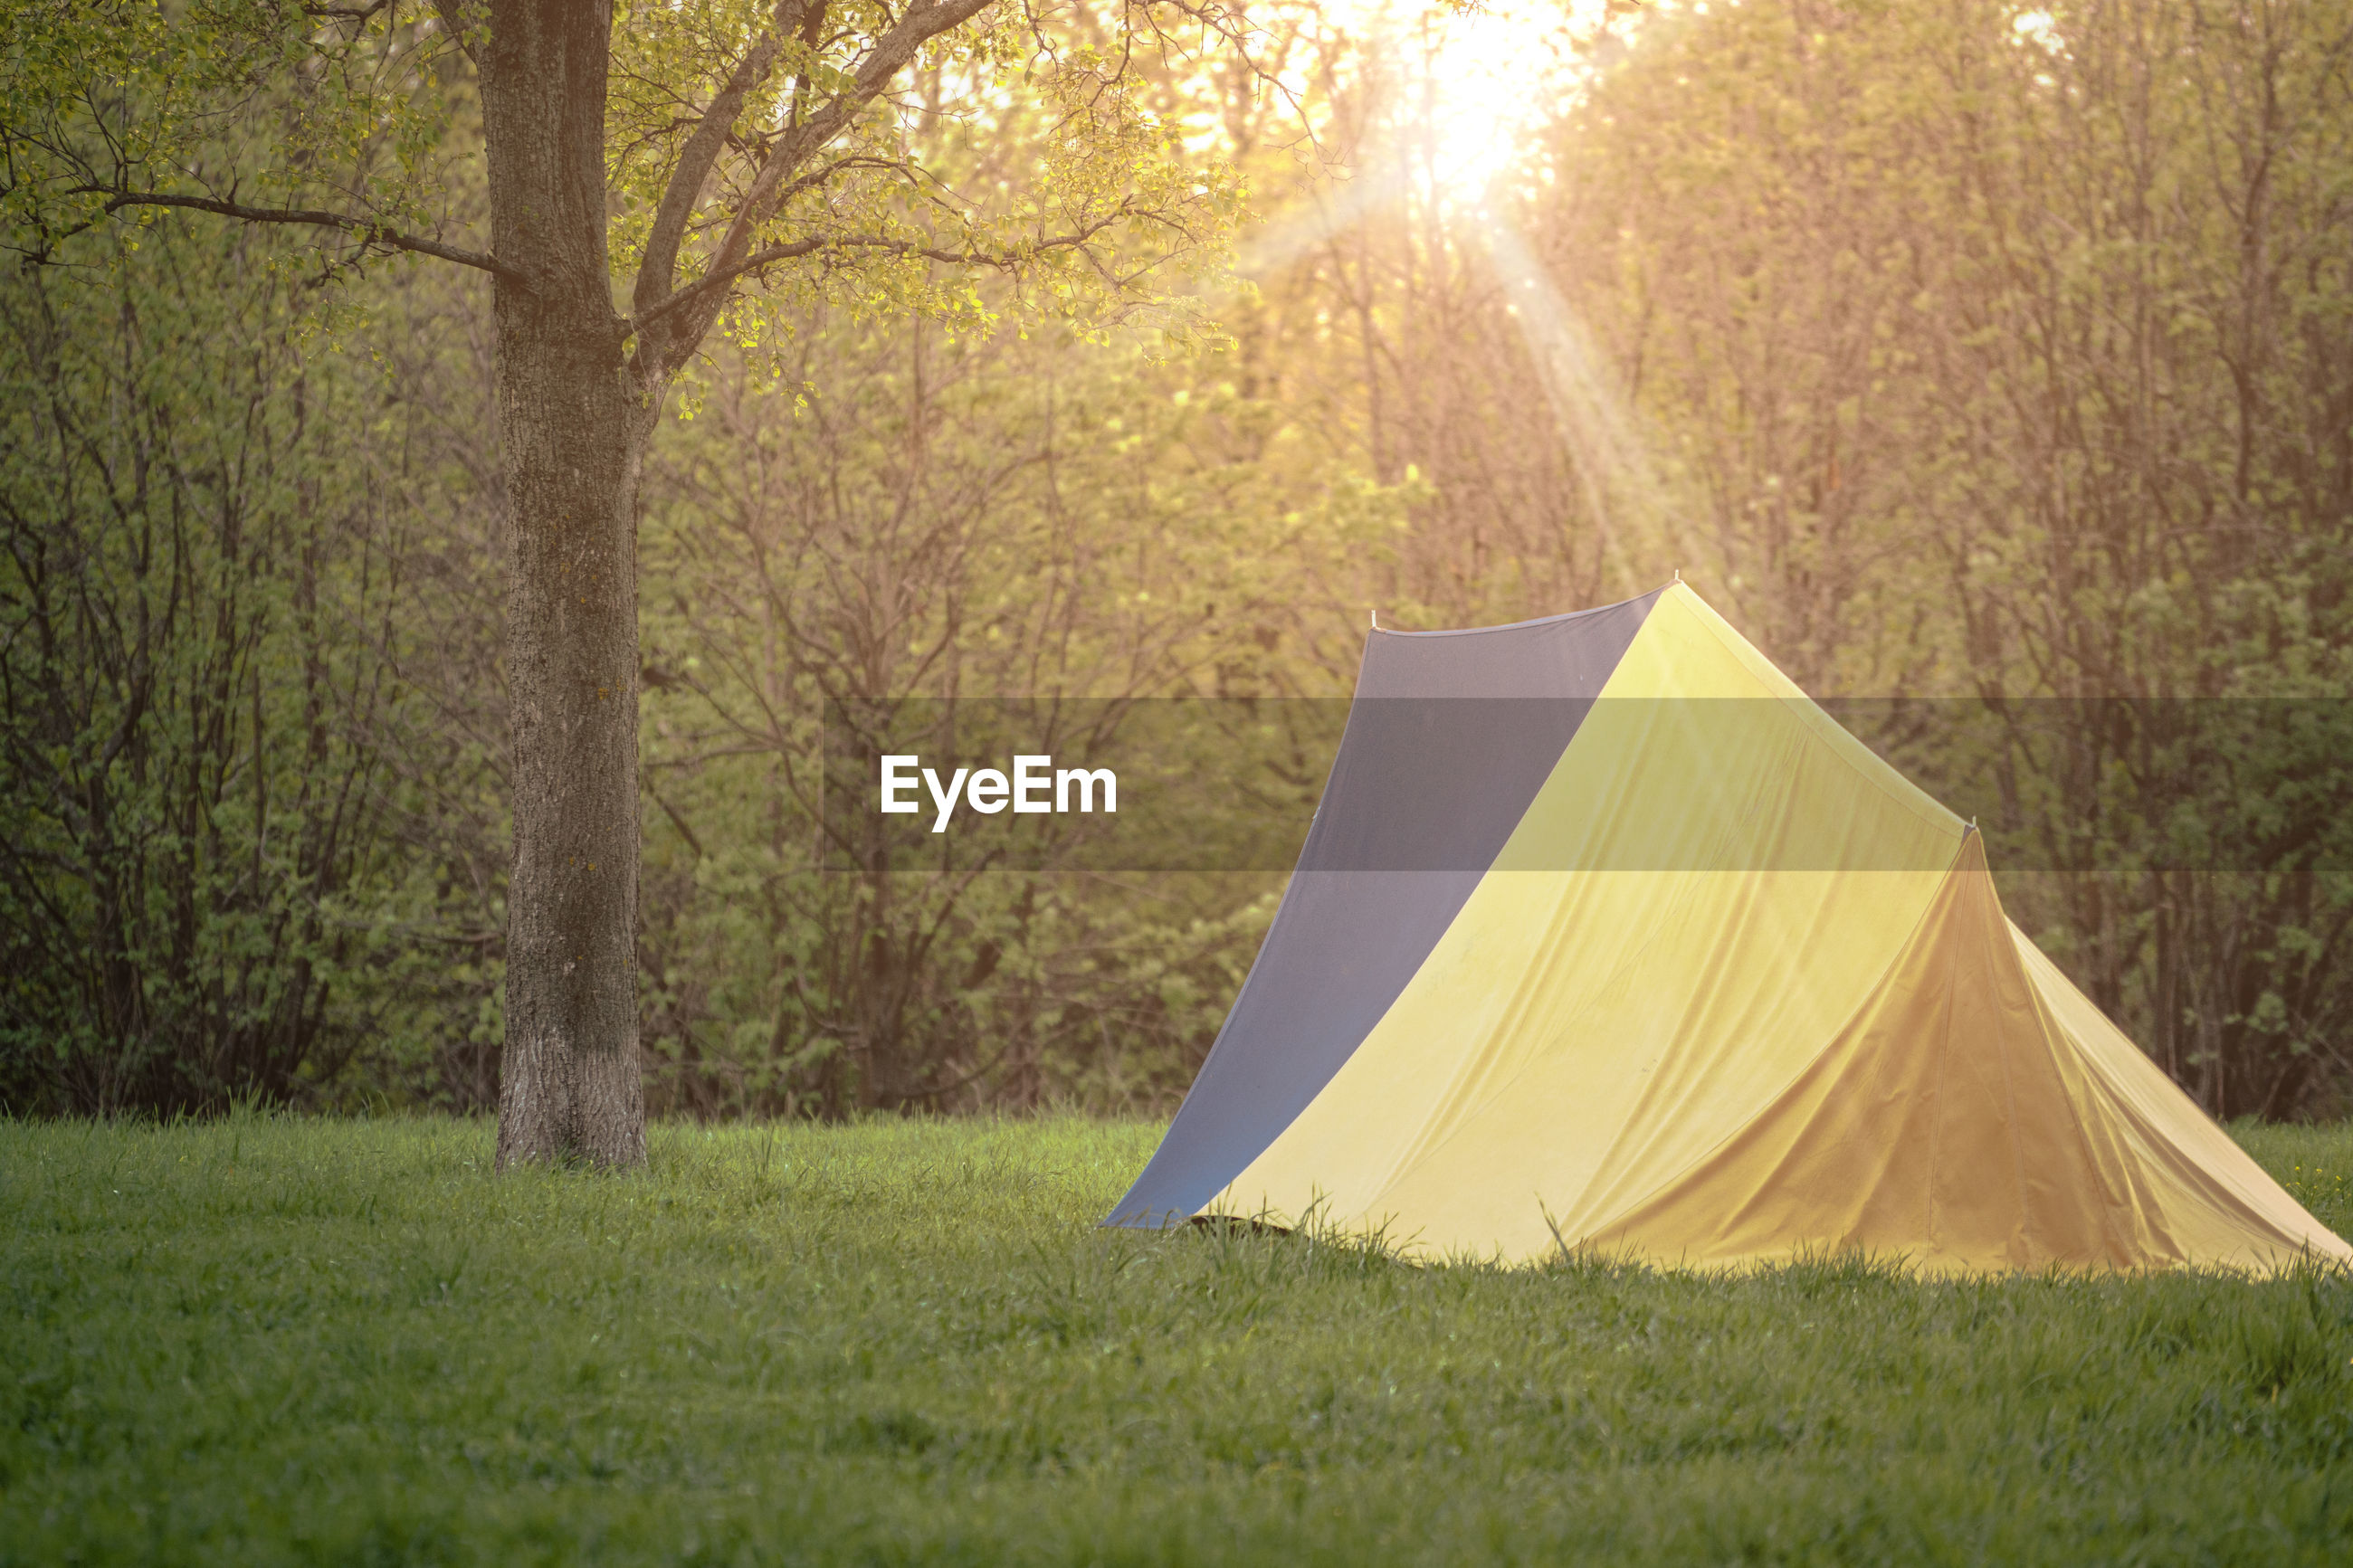 Tent on field against trees in forest